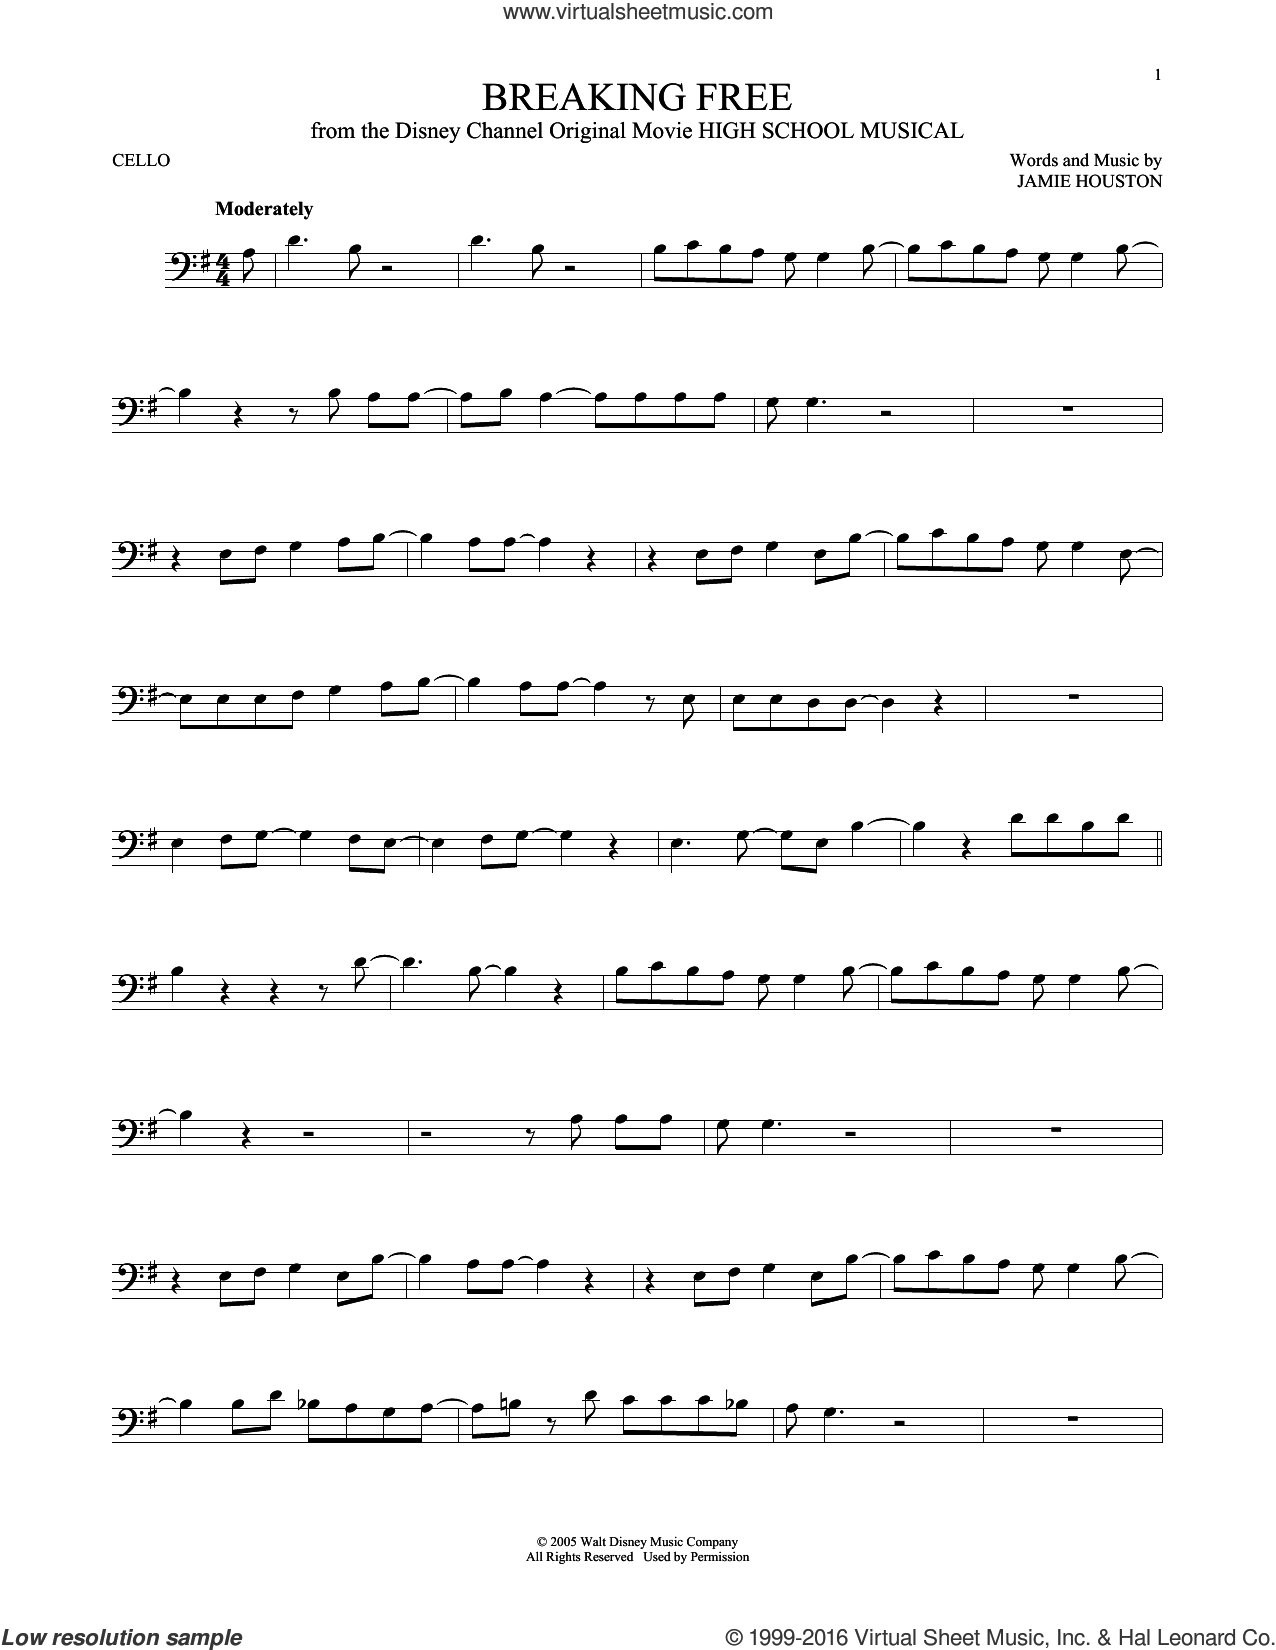 Breaking Free sheet music for cello solo by Jamie Houston and Zac Efron and Vanessa Anne Hudgens, intermediate skill level